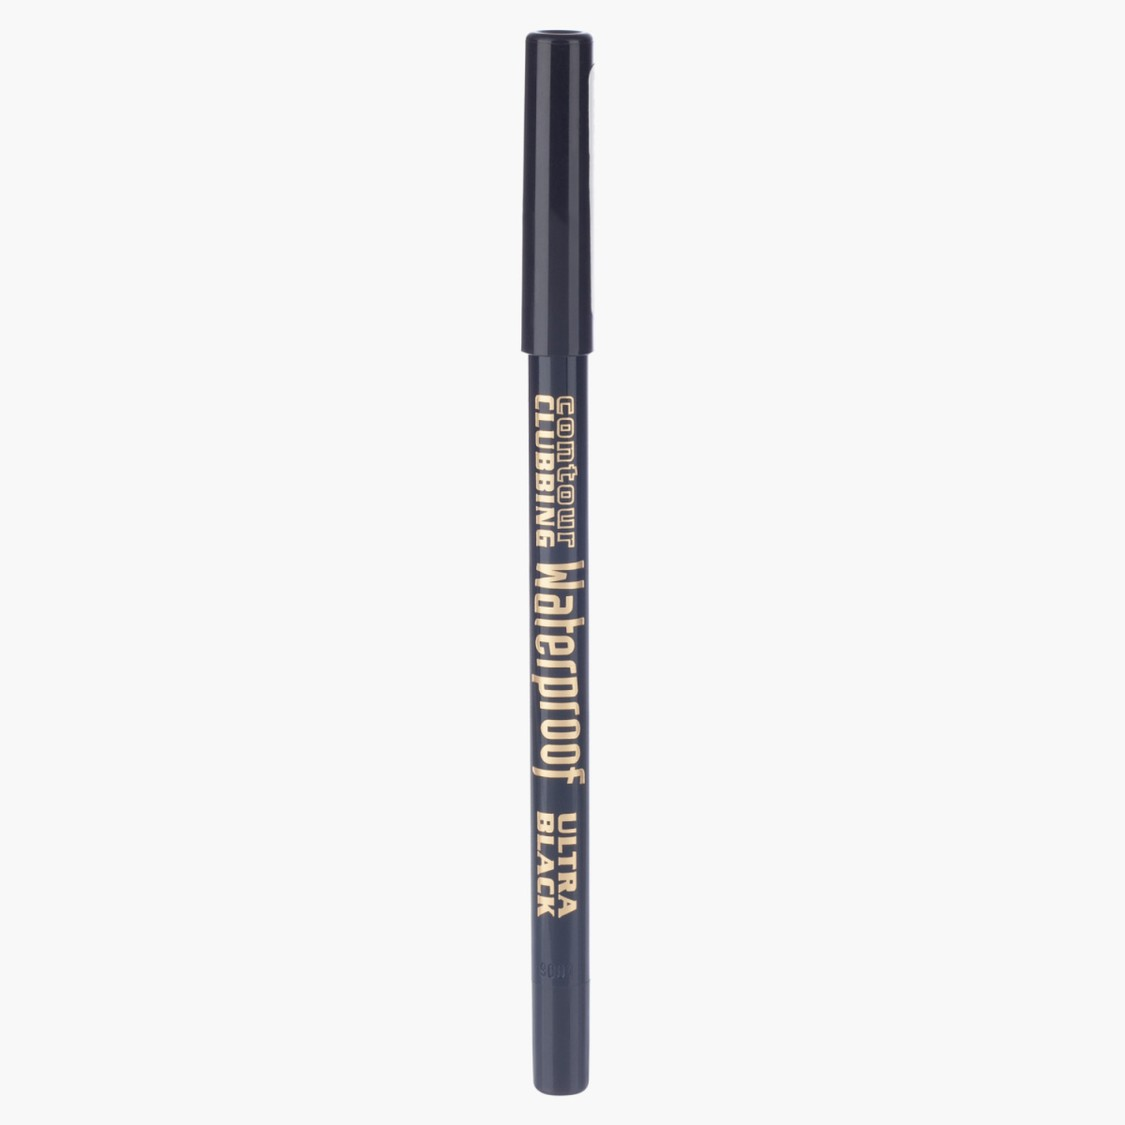 Bourjois Contour Clubbing Waterproof Eye Liner